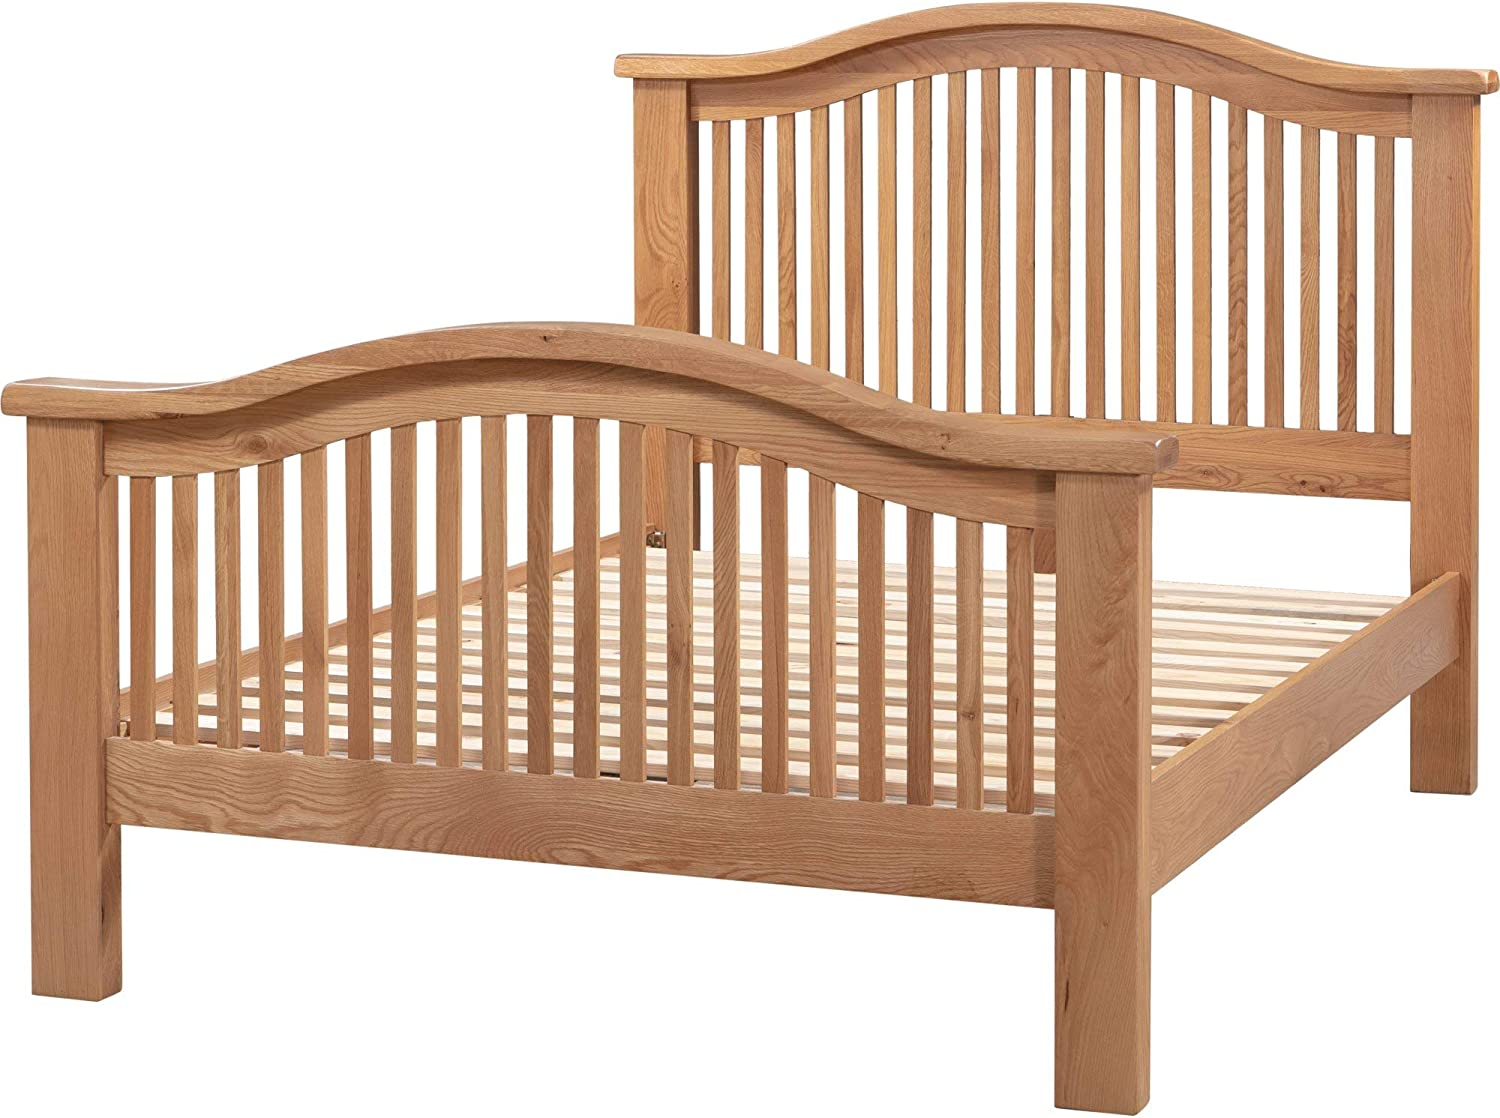 JTF Mega Discount Warehouse Chatsworth Oak Double Bed Curved Frame